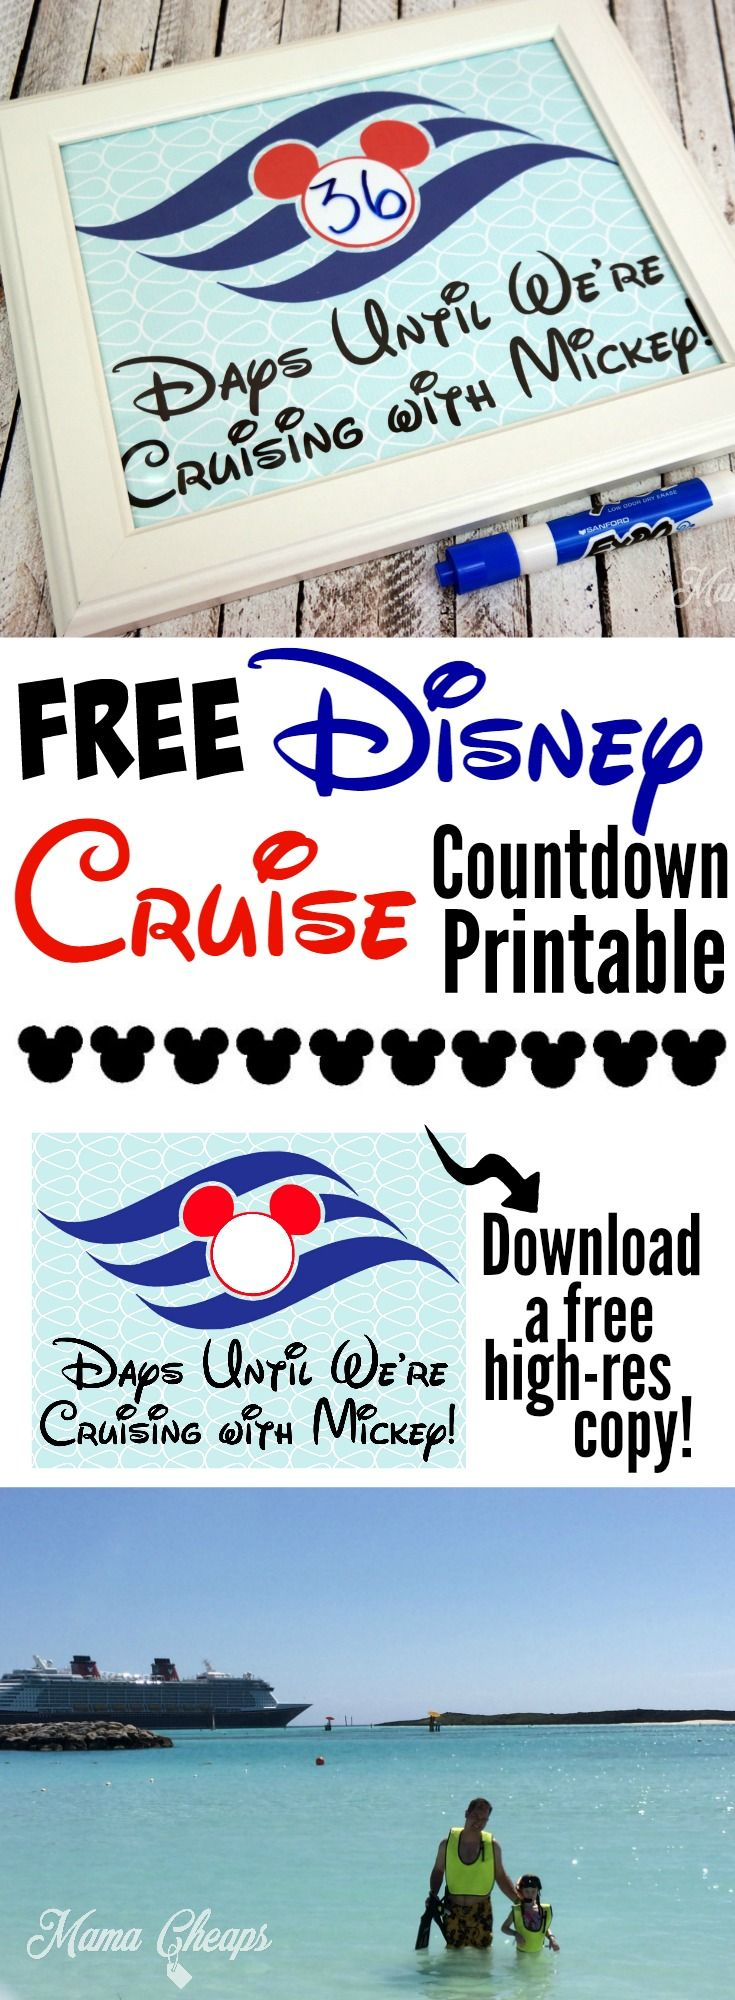 Disney Cruise Vacation Countdown FREE Printable! Find more great Disney tips and tricks on MamaCheaps.com/category/disney!